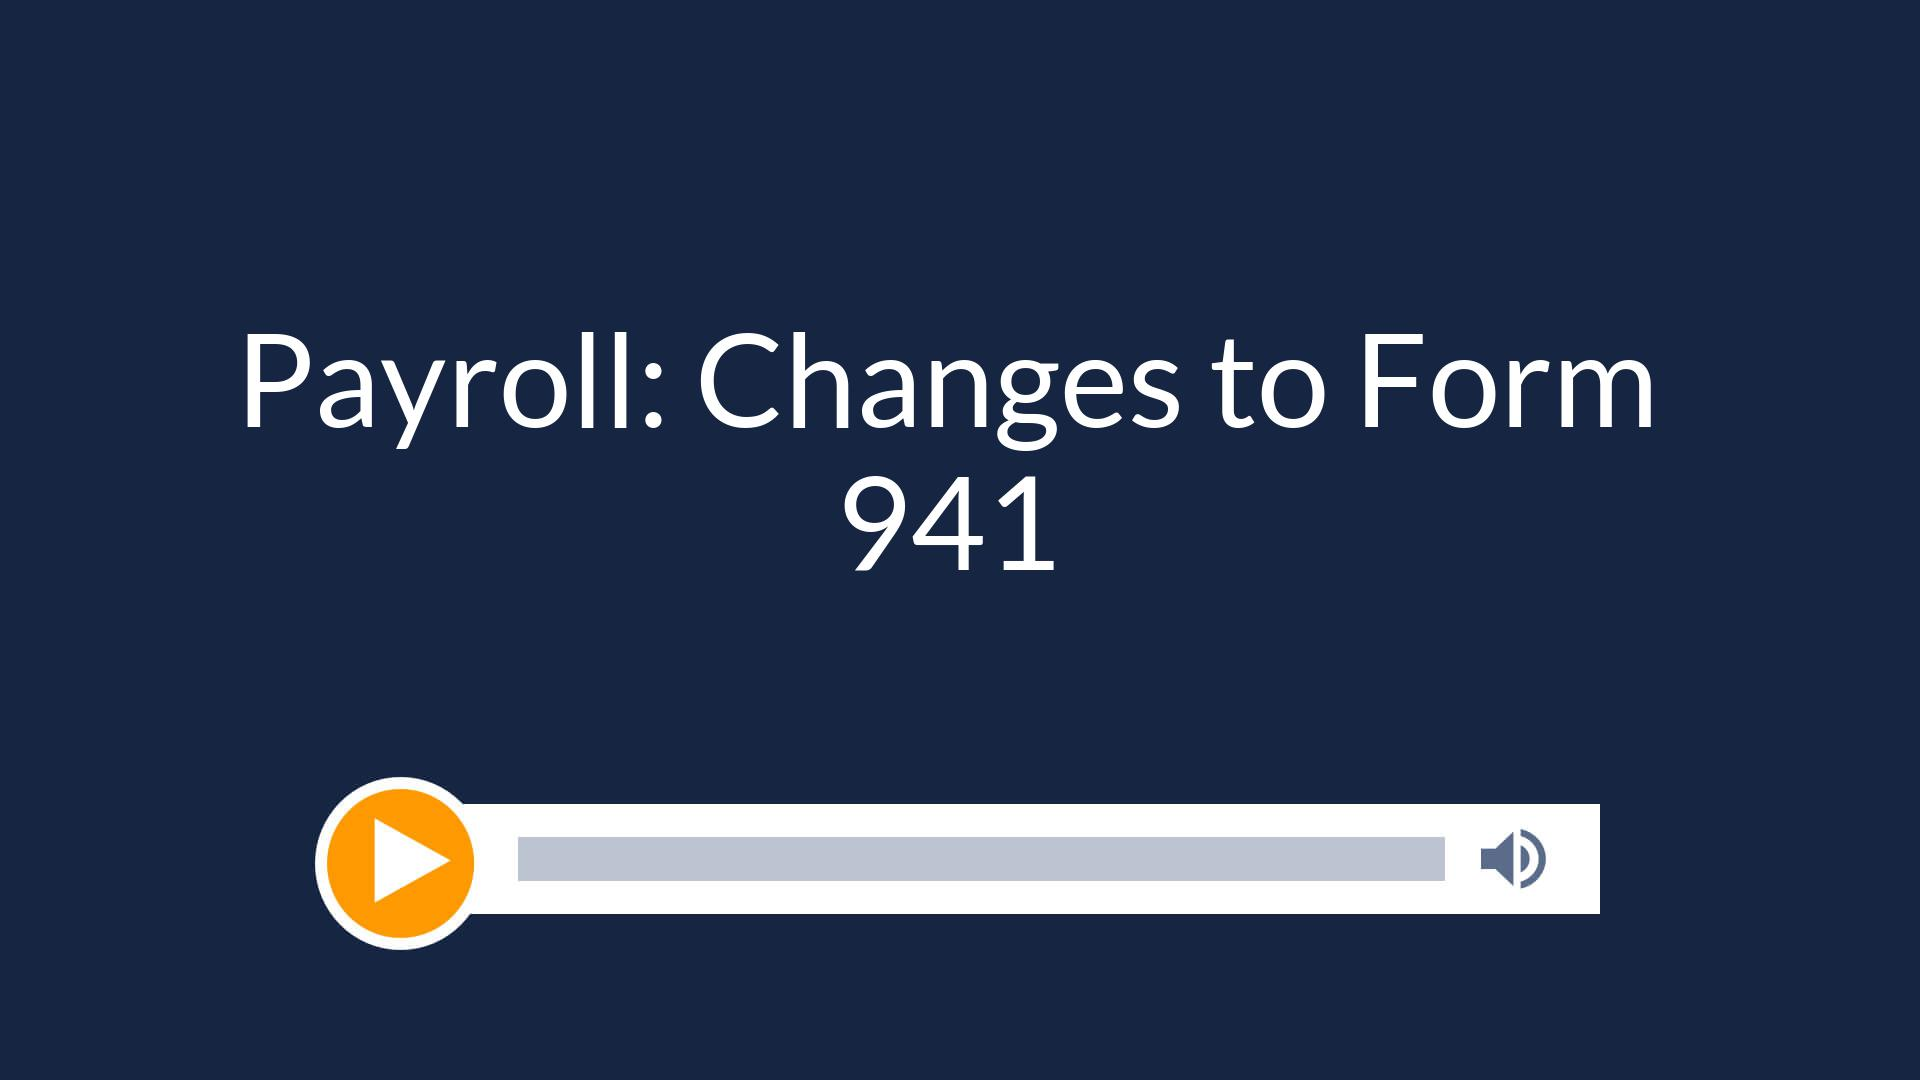 Payroll: Changes to Form 941